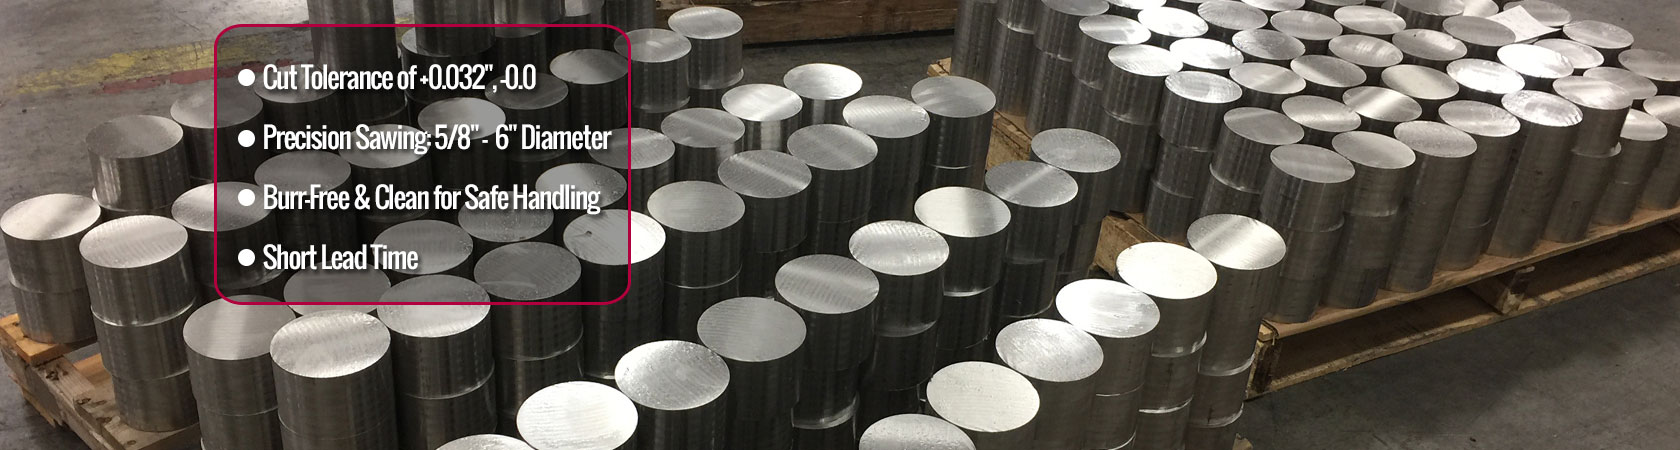 Rolled Alloys, Inc. - Global Leader in Specialty Metals